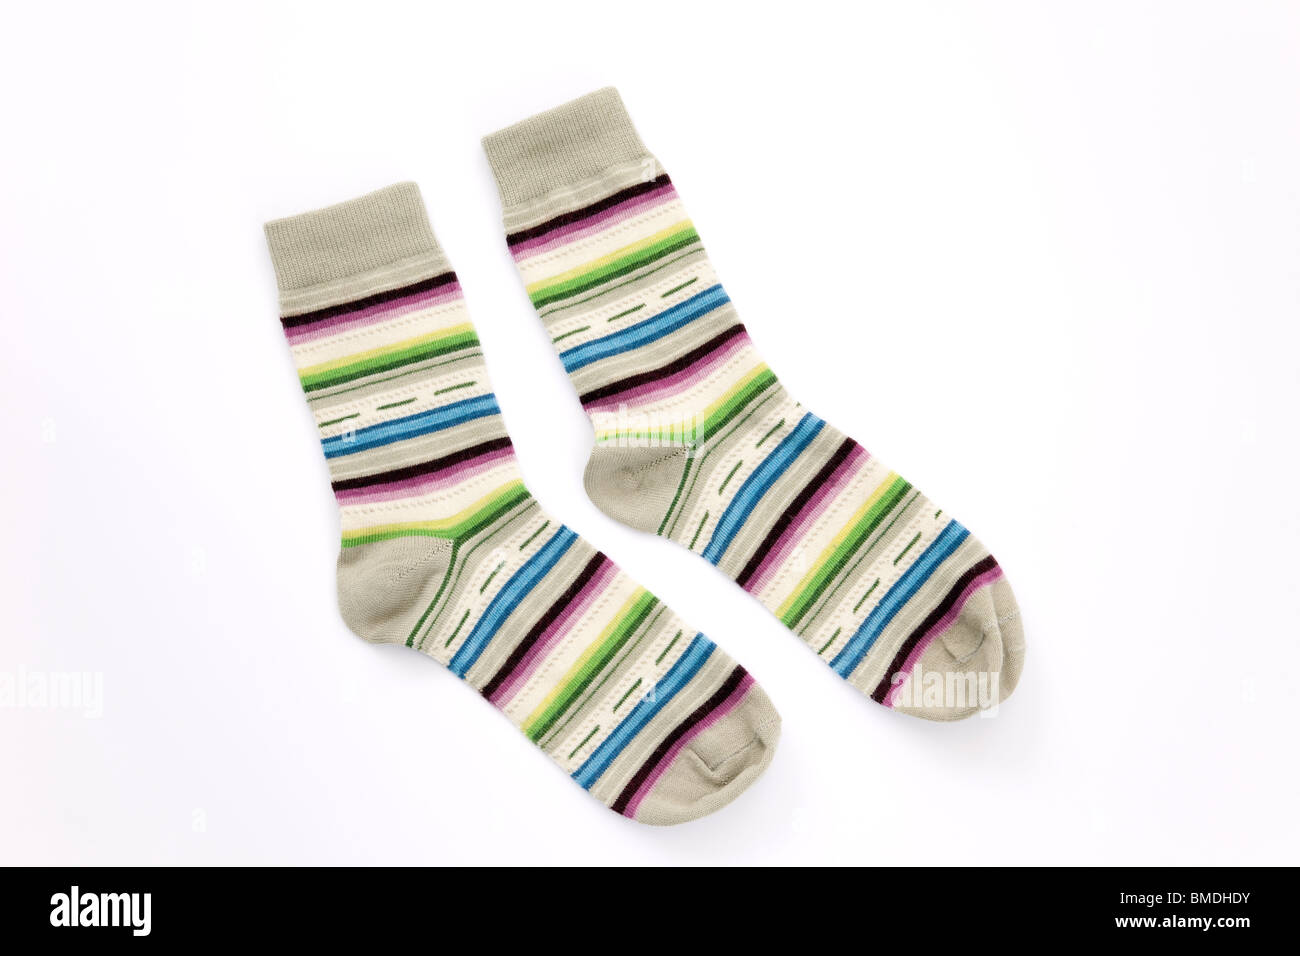 Matching pair of striped woollen socks on a white background - Stock Image